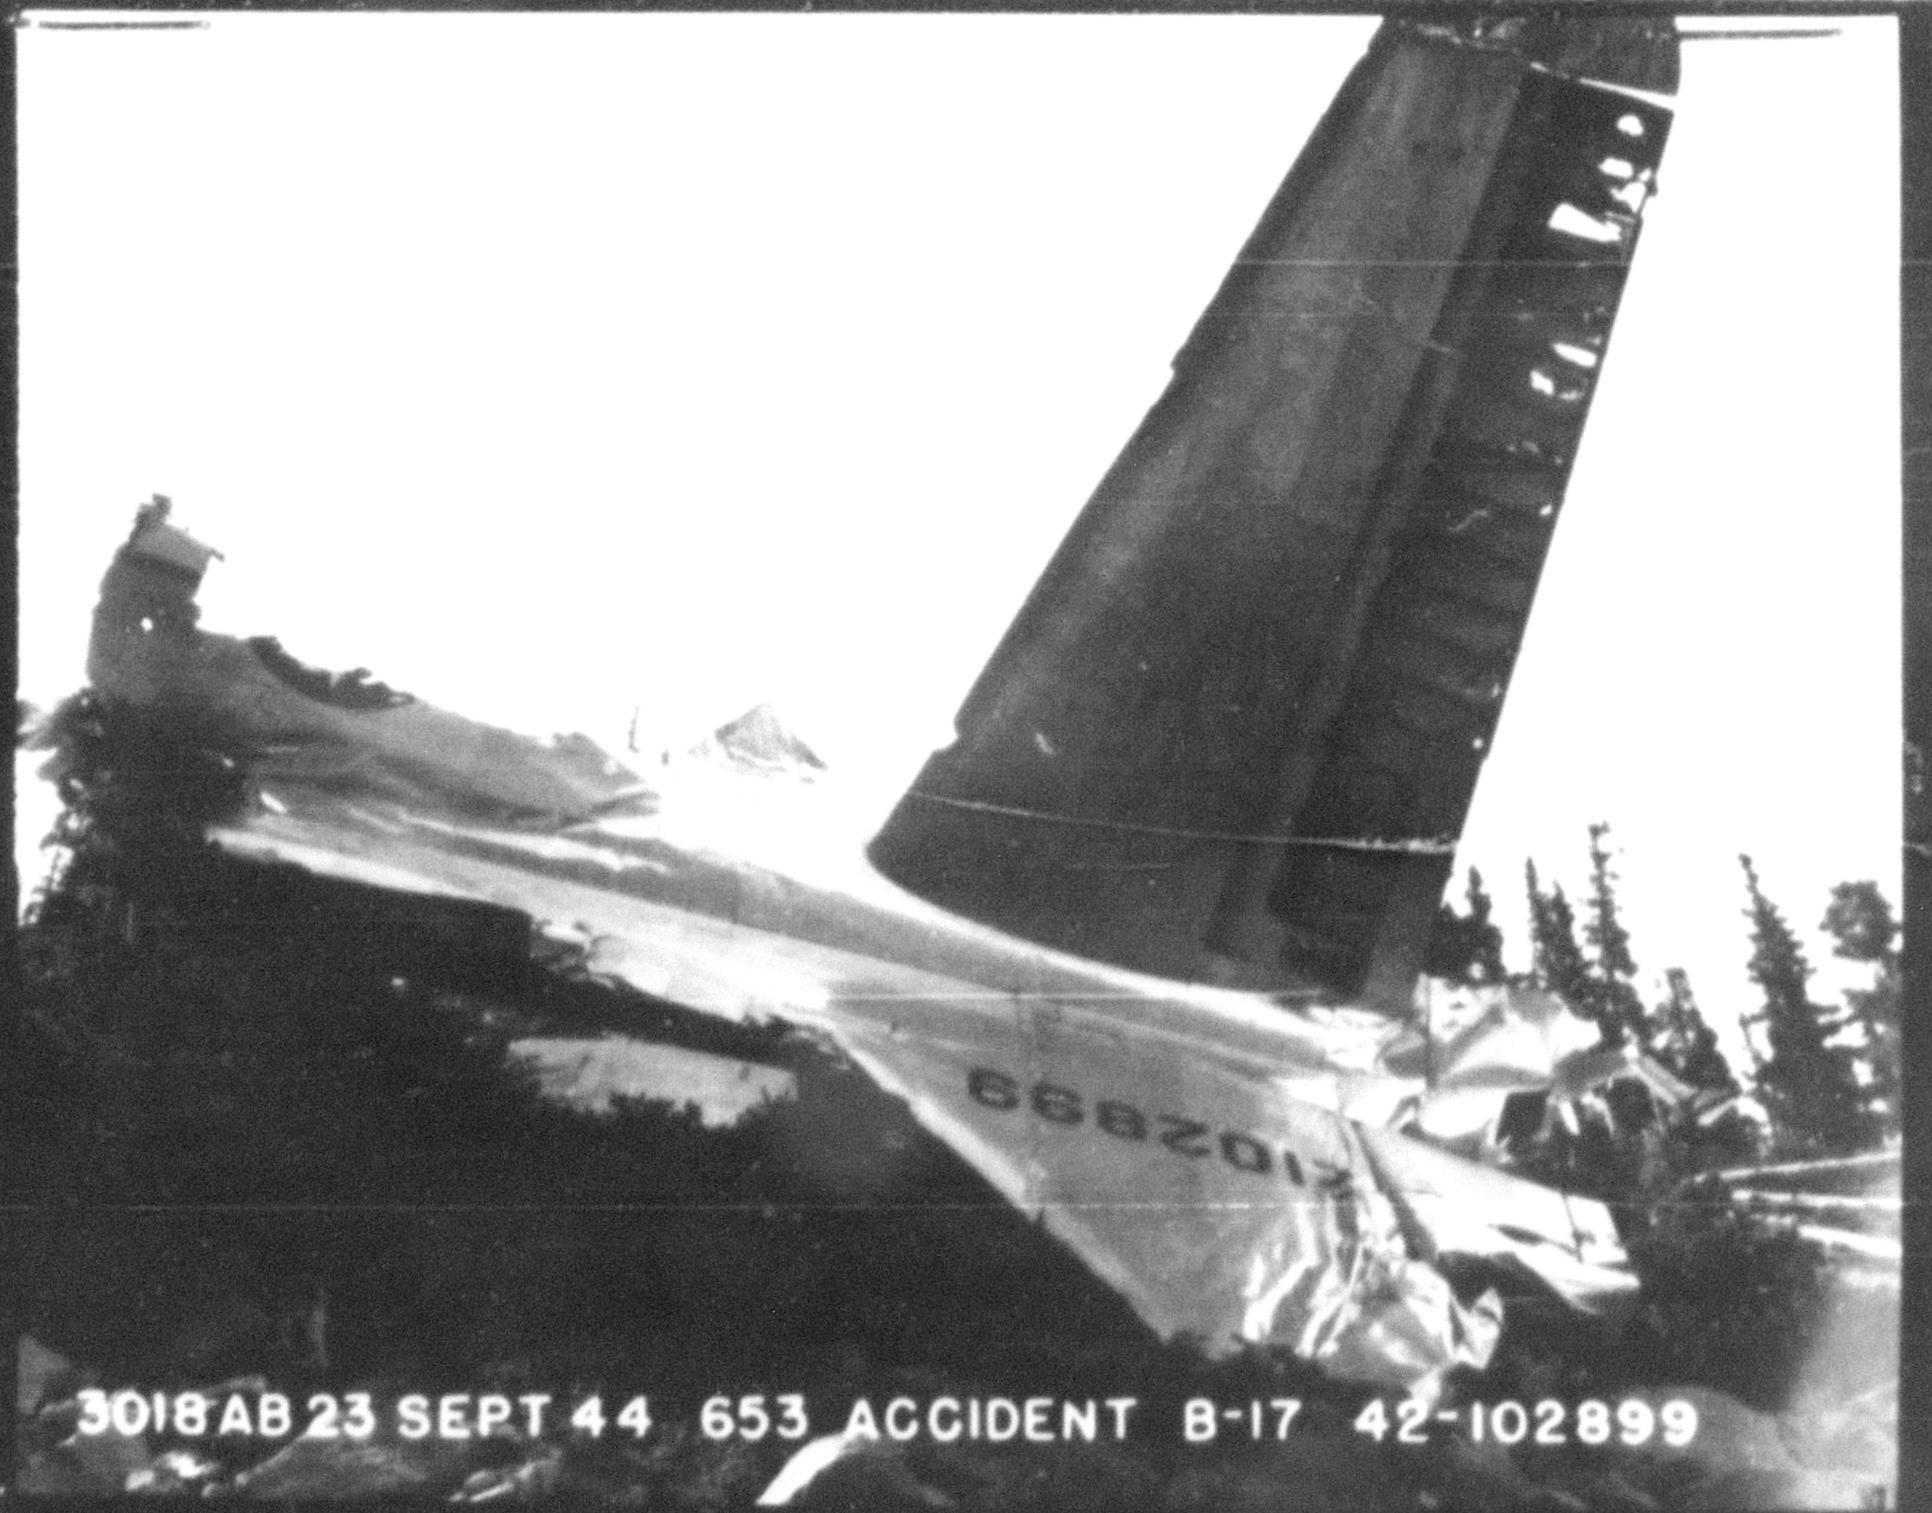 B-17G 42-102889 took off from Kingman Army Air Field on a round robin training night flight. While in the vicinity of Flagstaff, the Flying Fortress caught fire and crashed in the San Francisco Peaks on September 17, 1944. Aerospace Archaeologist Chris McDoniel will talk about this crash and several others on Jan. 10, 2015 at the Pima Air & Space Museum.